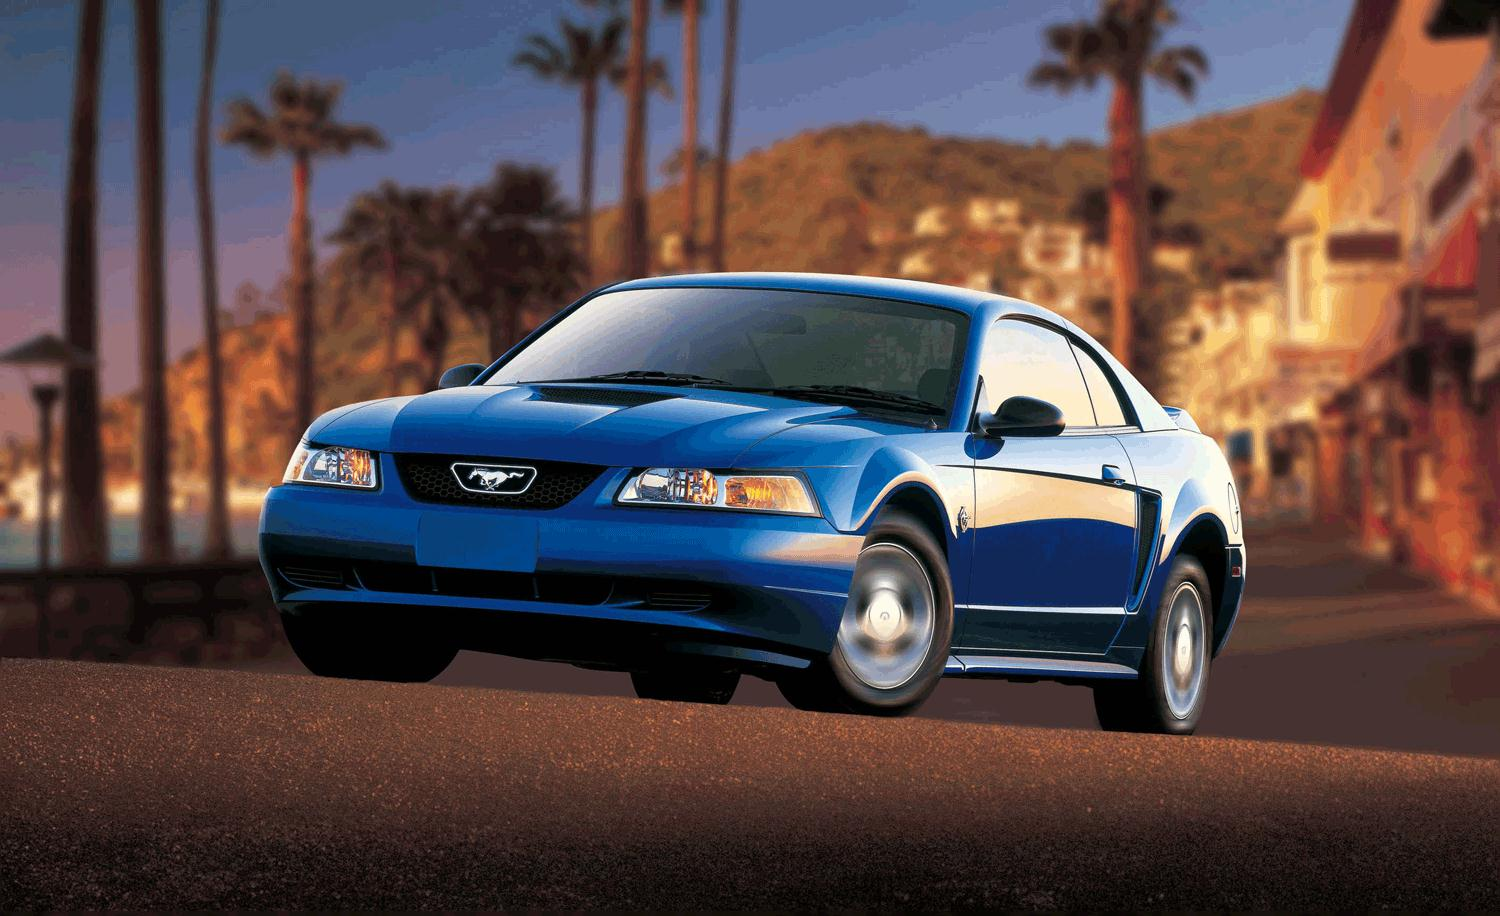 Thread of the day low mileage mustang or high mileage civic same